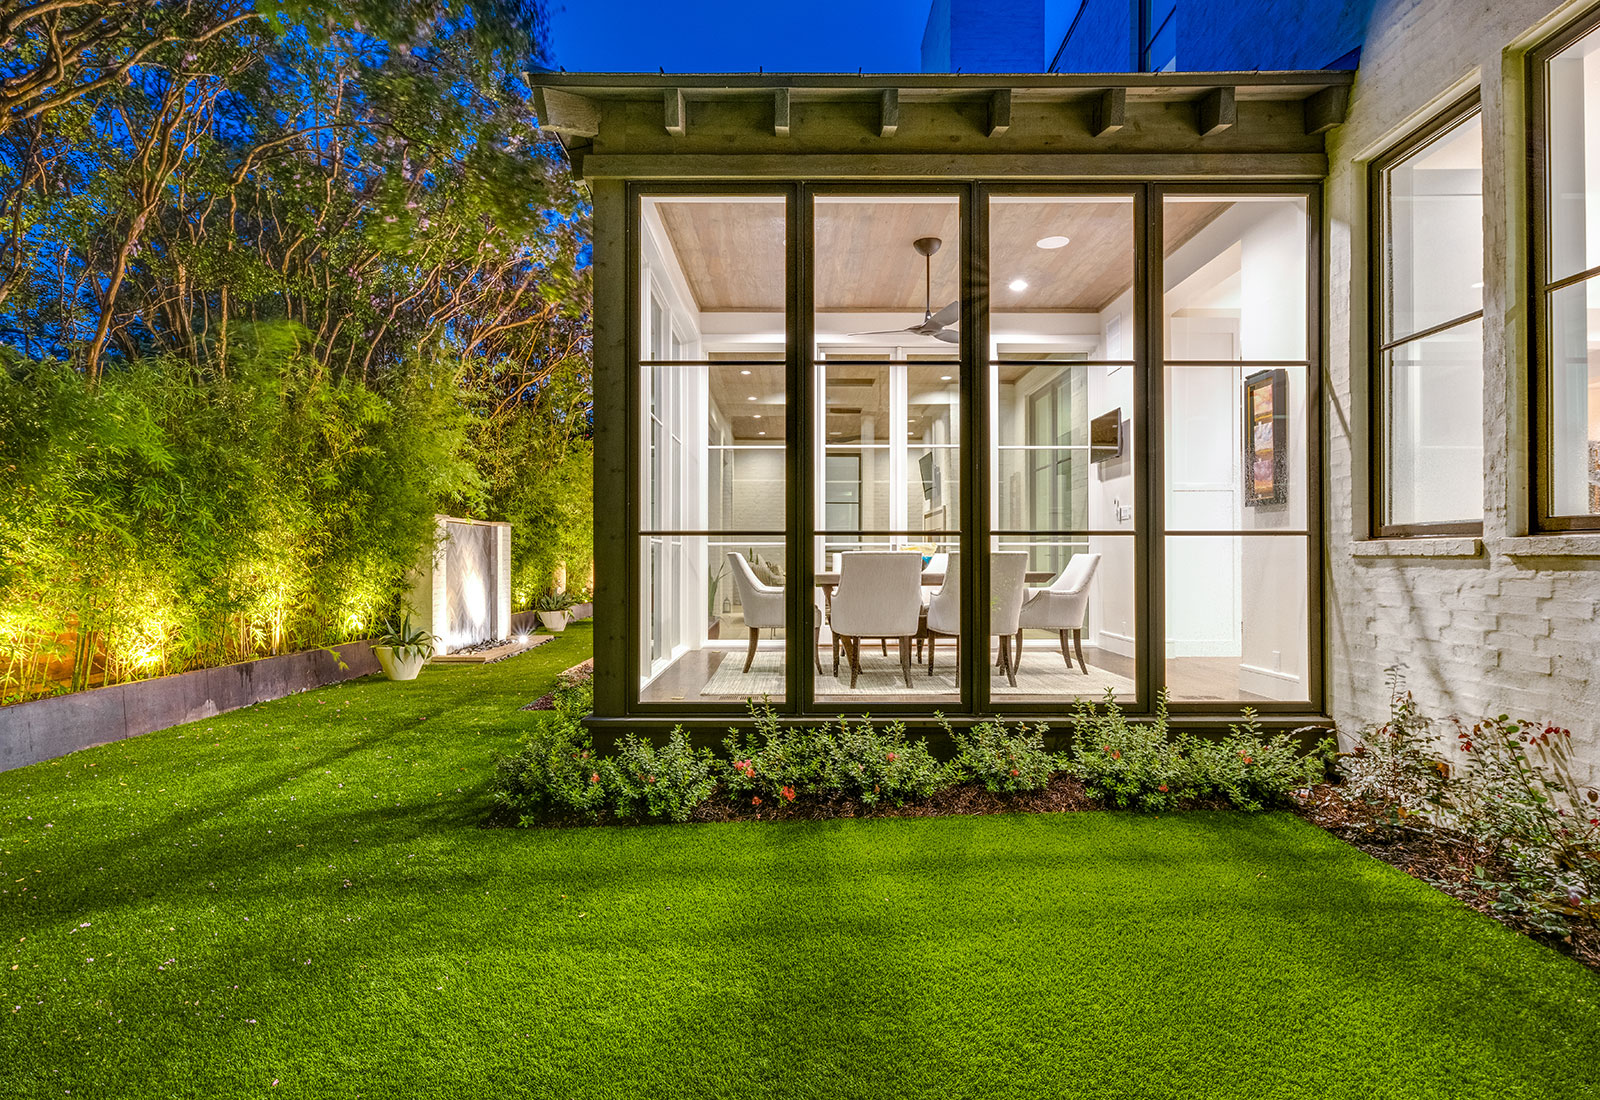 ddla-design-pemberton-modern-rear-lawn-evening-breakfast-room.jpg